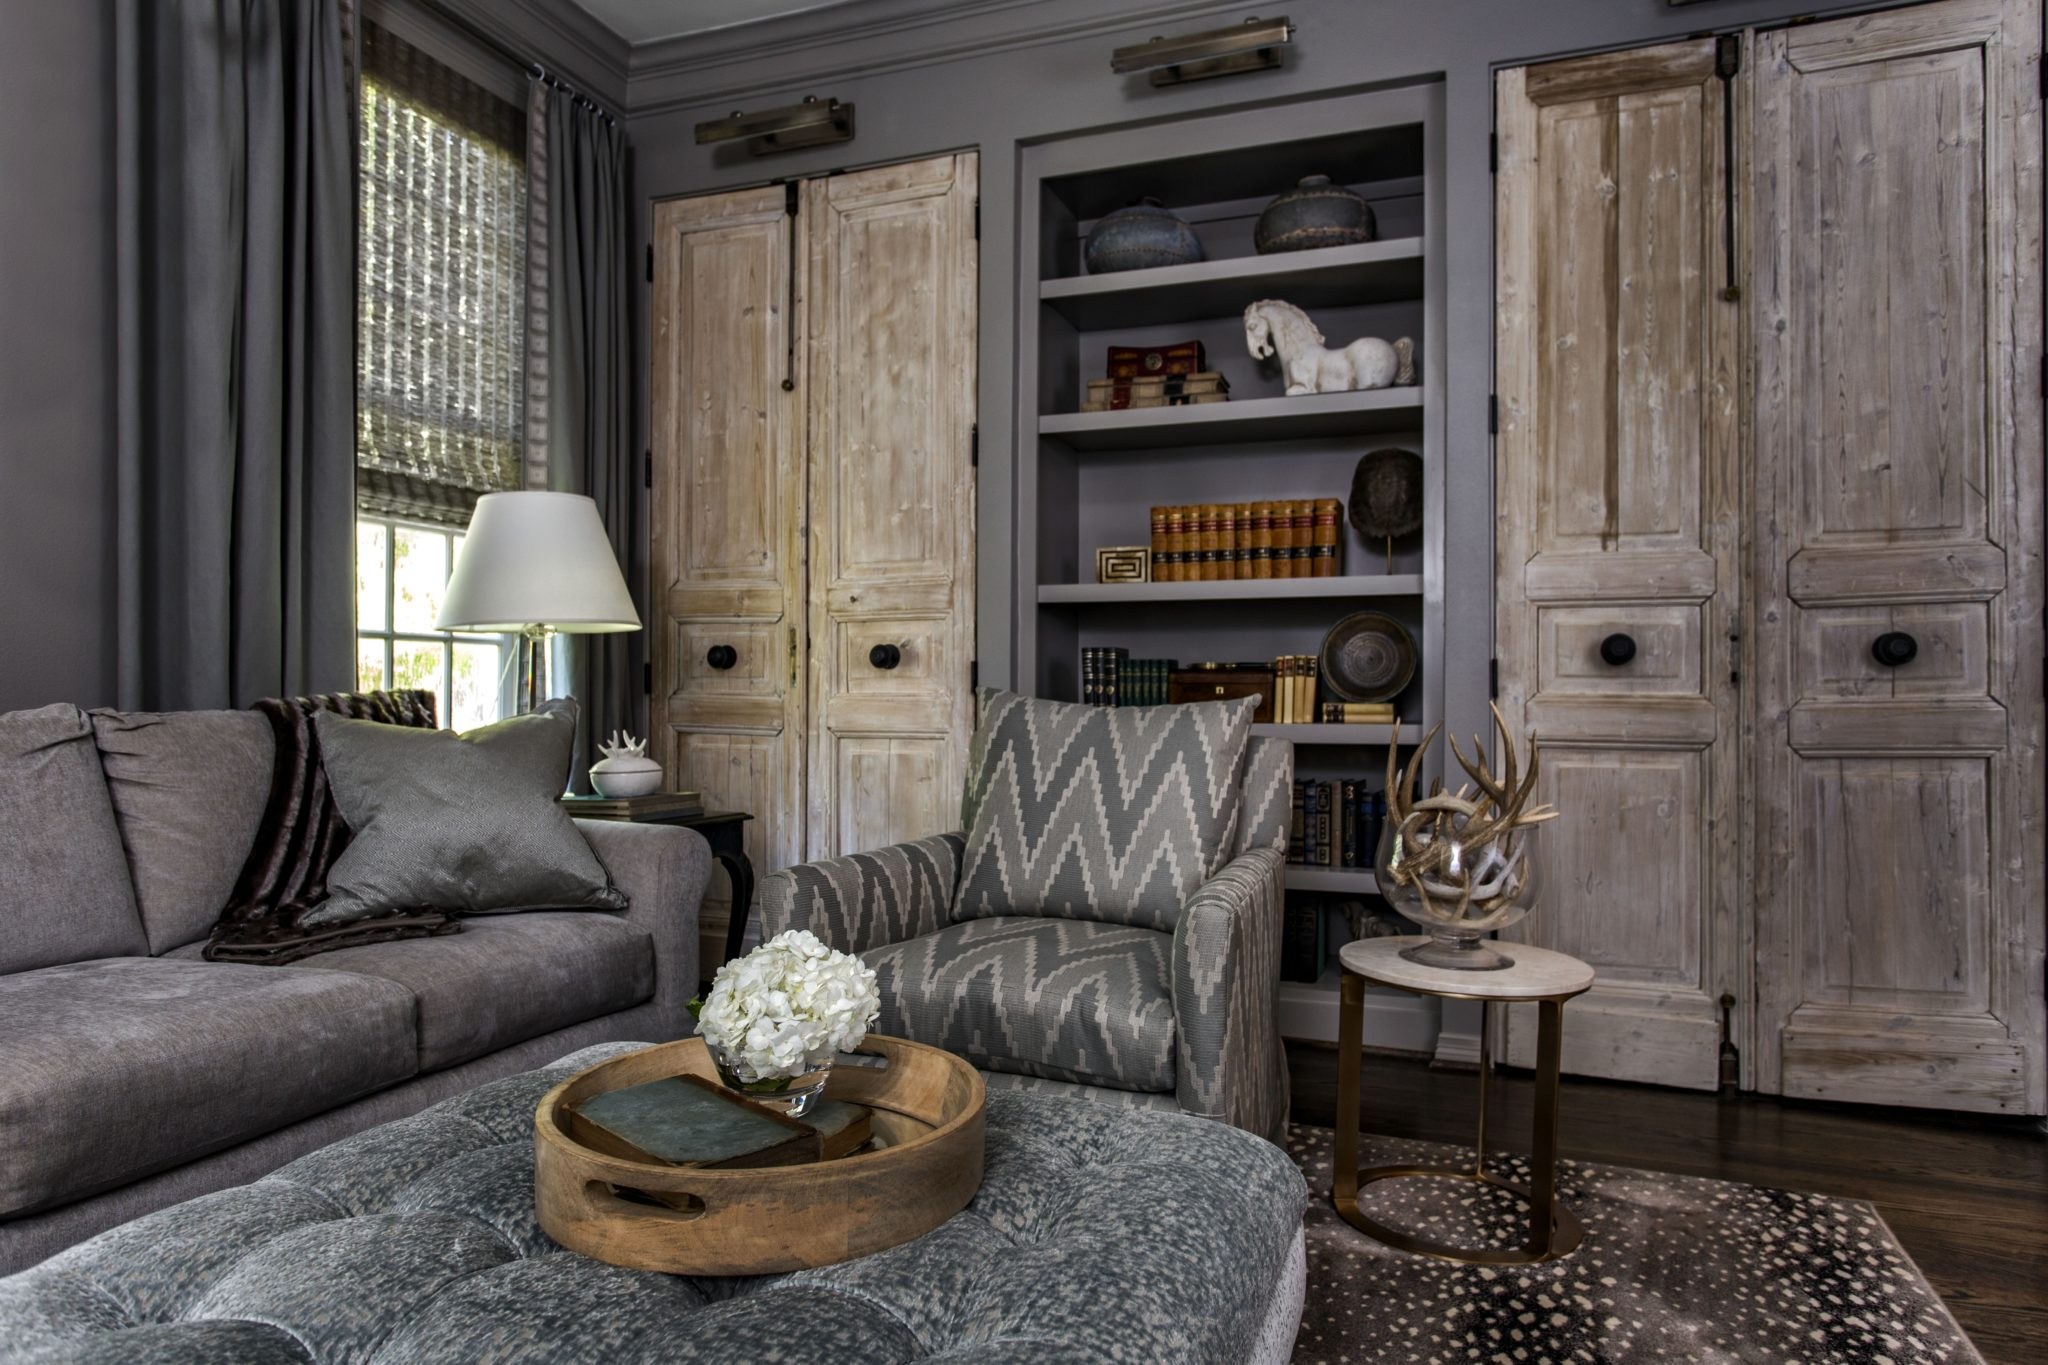 Briargrove Houston Living Room Featuring Reclaimed Wood Doors by Cindy Witmer Designs